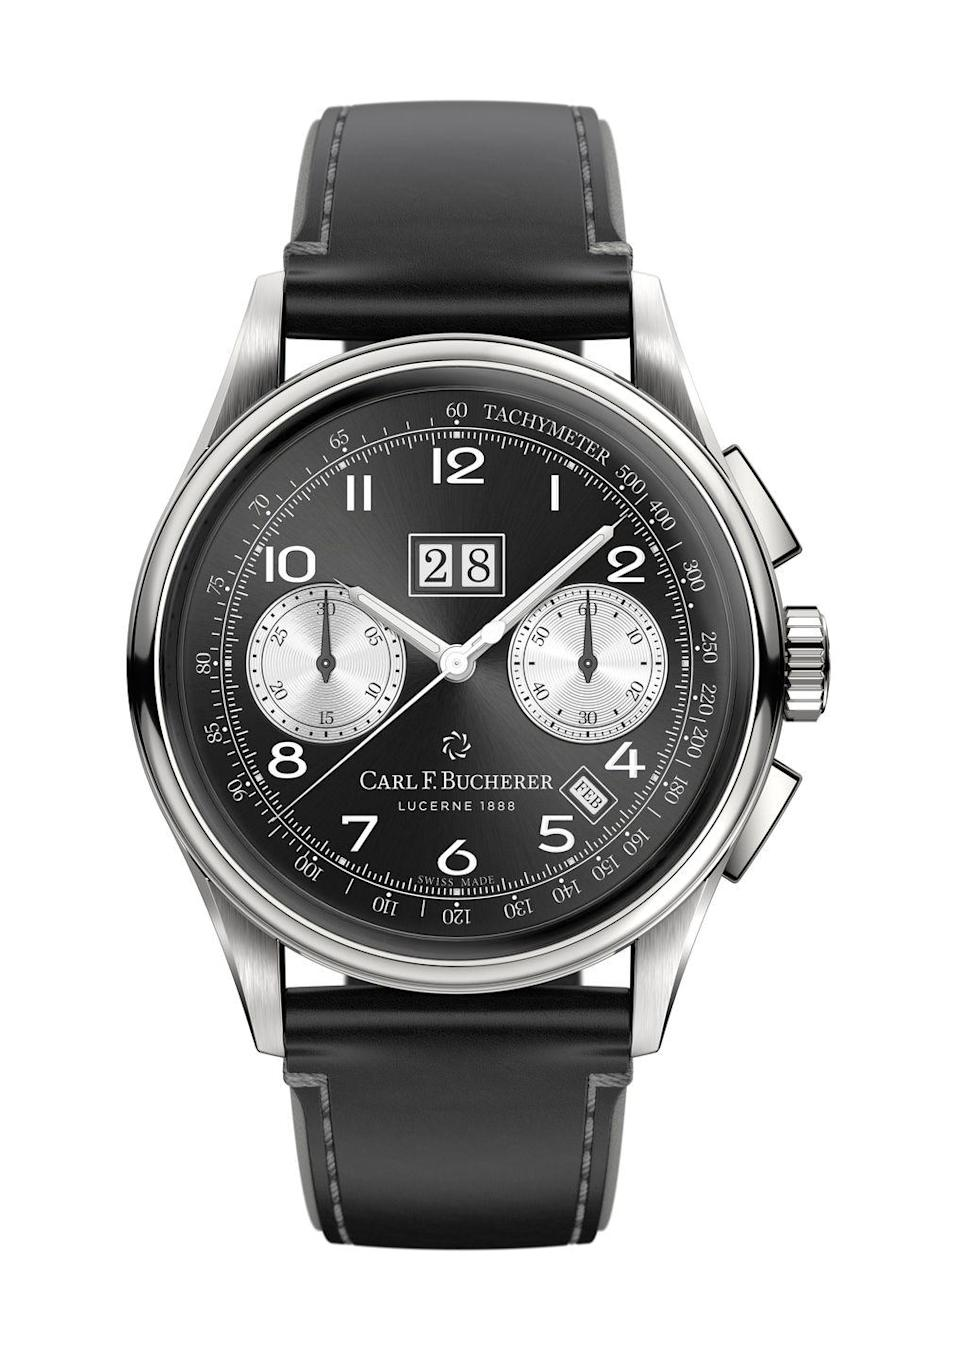 """<p>Heritage BiCompax Annual</p><p><a class=""""link rapid-noclick-resp"""" href=""""https://www.carl-f-bucherer.com/en/watches/heritage-bicompax-annual-00-10803-08-32-01"""" rel=""""nofollow noopener"""" target=""""_blank"""" data-ylk=""""slk:SHOP"""">SHOP</a></p><p>The Sixties and Seventies have been well and truly plundered for inspiration by watchmakers. With good reason – it was a golden age for watch design. Carl F Bucherer's Heritage collection turns the dial back slightly more, to the refined and elegant Fifties. </p><p>A new version of its Heritage BiCompax Annual comes with a reverse panda dial that gives its clean, mid-century style a sportier twist. If you're in the market for a vintage inspired sports watch that stands apart from the crowd but doesn't require a new mortgage, this is the one.</p><p>£5,500; <a href=""""https://www.carl-f-bucherer.com/en/watches/heritage-bicompax-annual-00-10803-08-32-01"""" rel=""""nofollow noopener"""" target=""""_blank"""" data-ylk=""""slk:carl-f-bucherer.com"""" class=""""link rapid-noclick-resp"""">carl-f-bucherer.com </a></p>"""